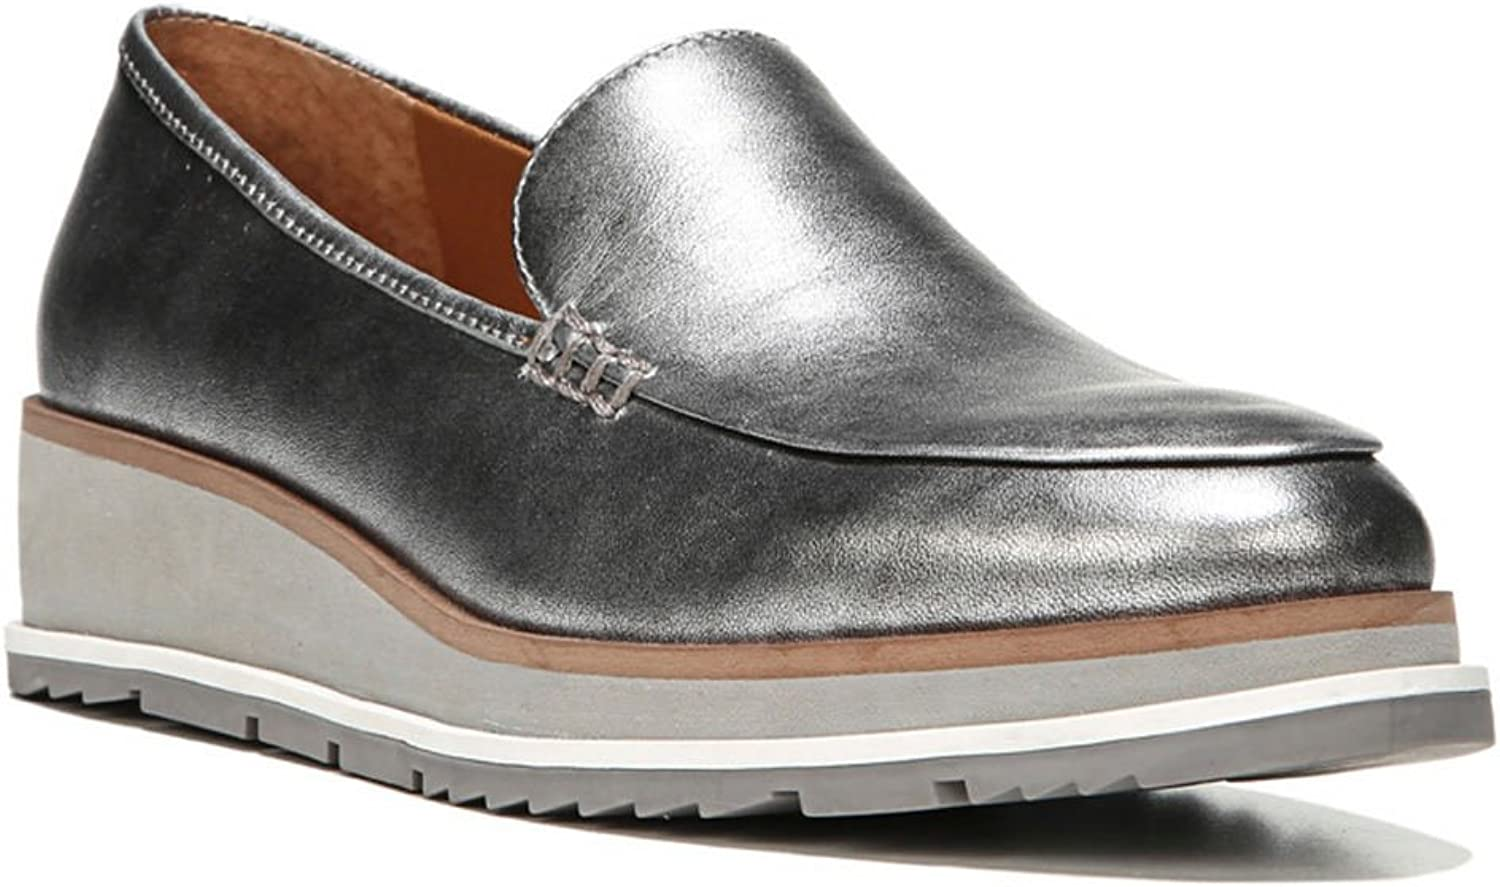 Franco Sarto Sarto Sarto Artist Collection Ayers Woherrar Slip On  märkeuttag